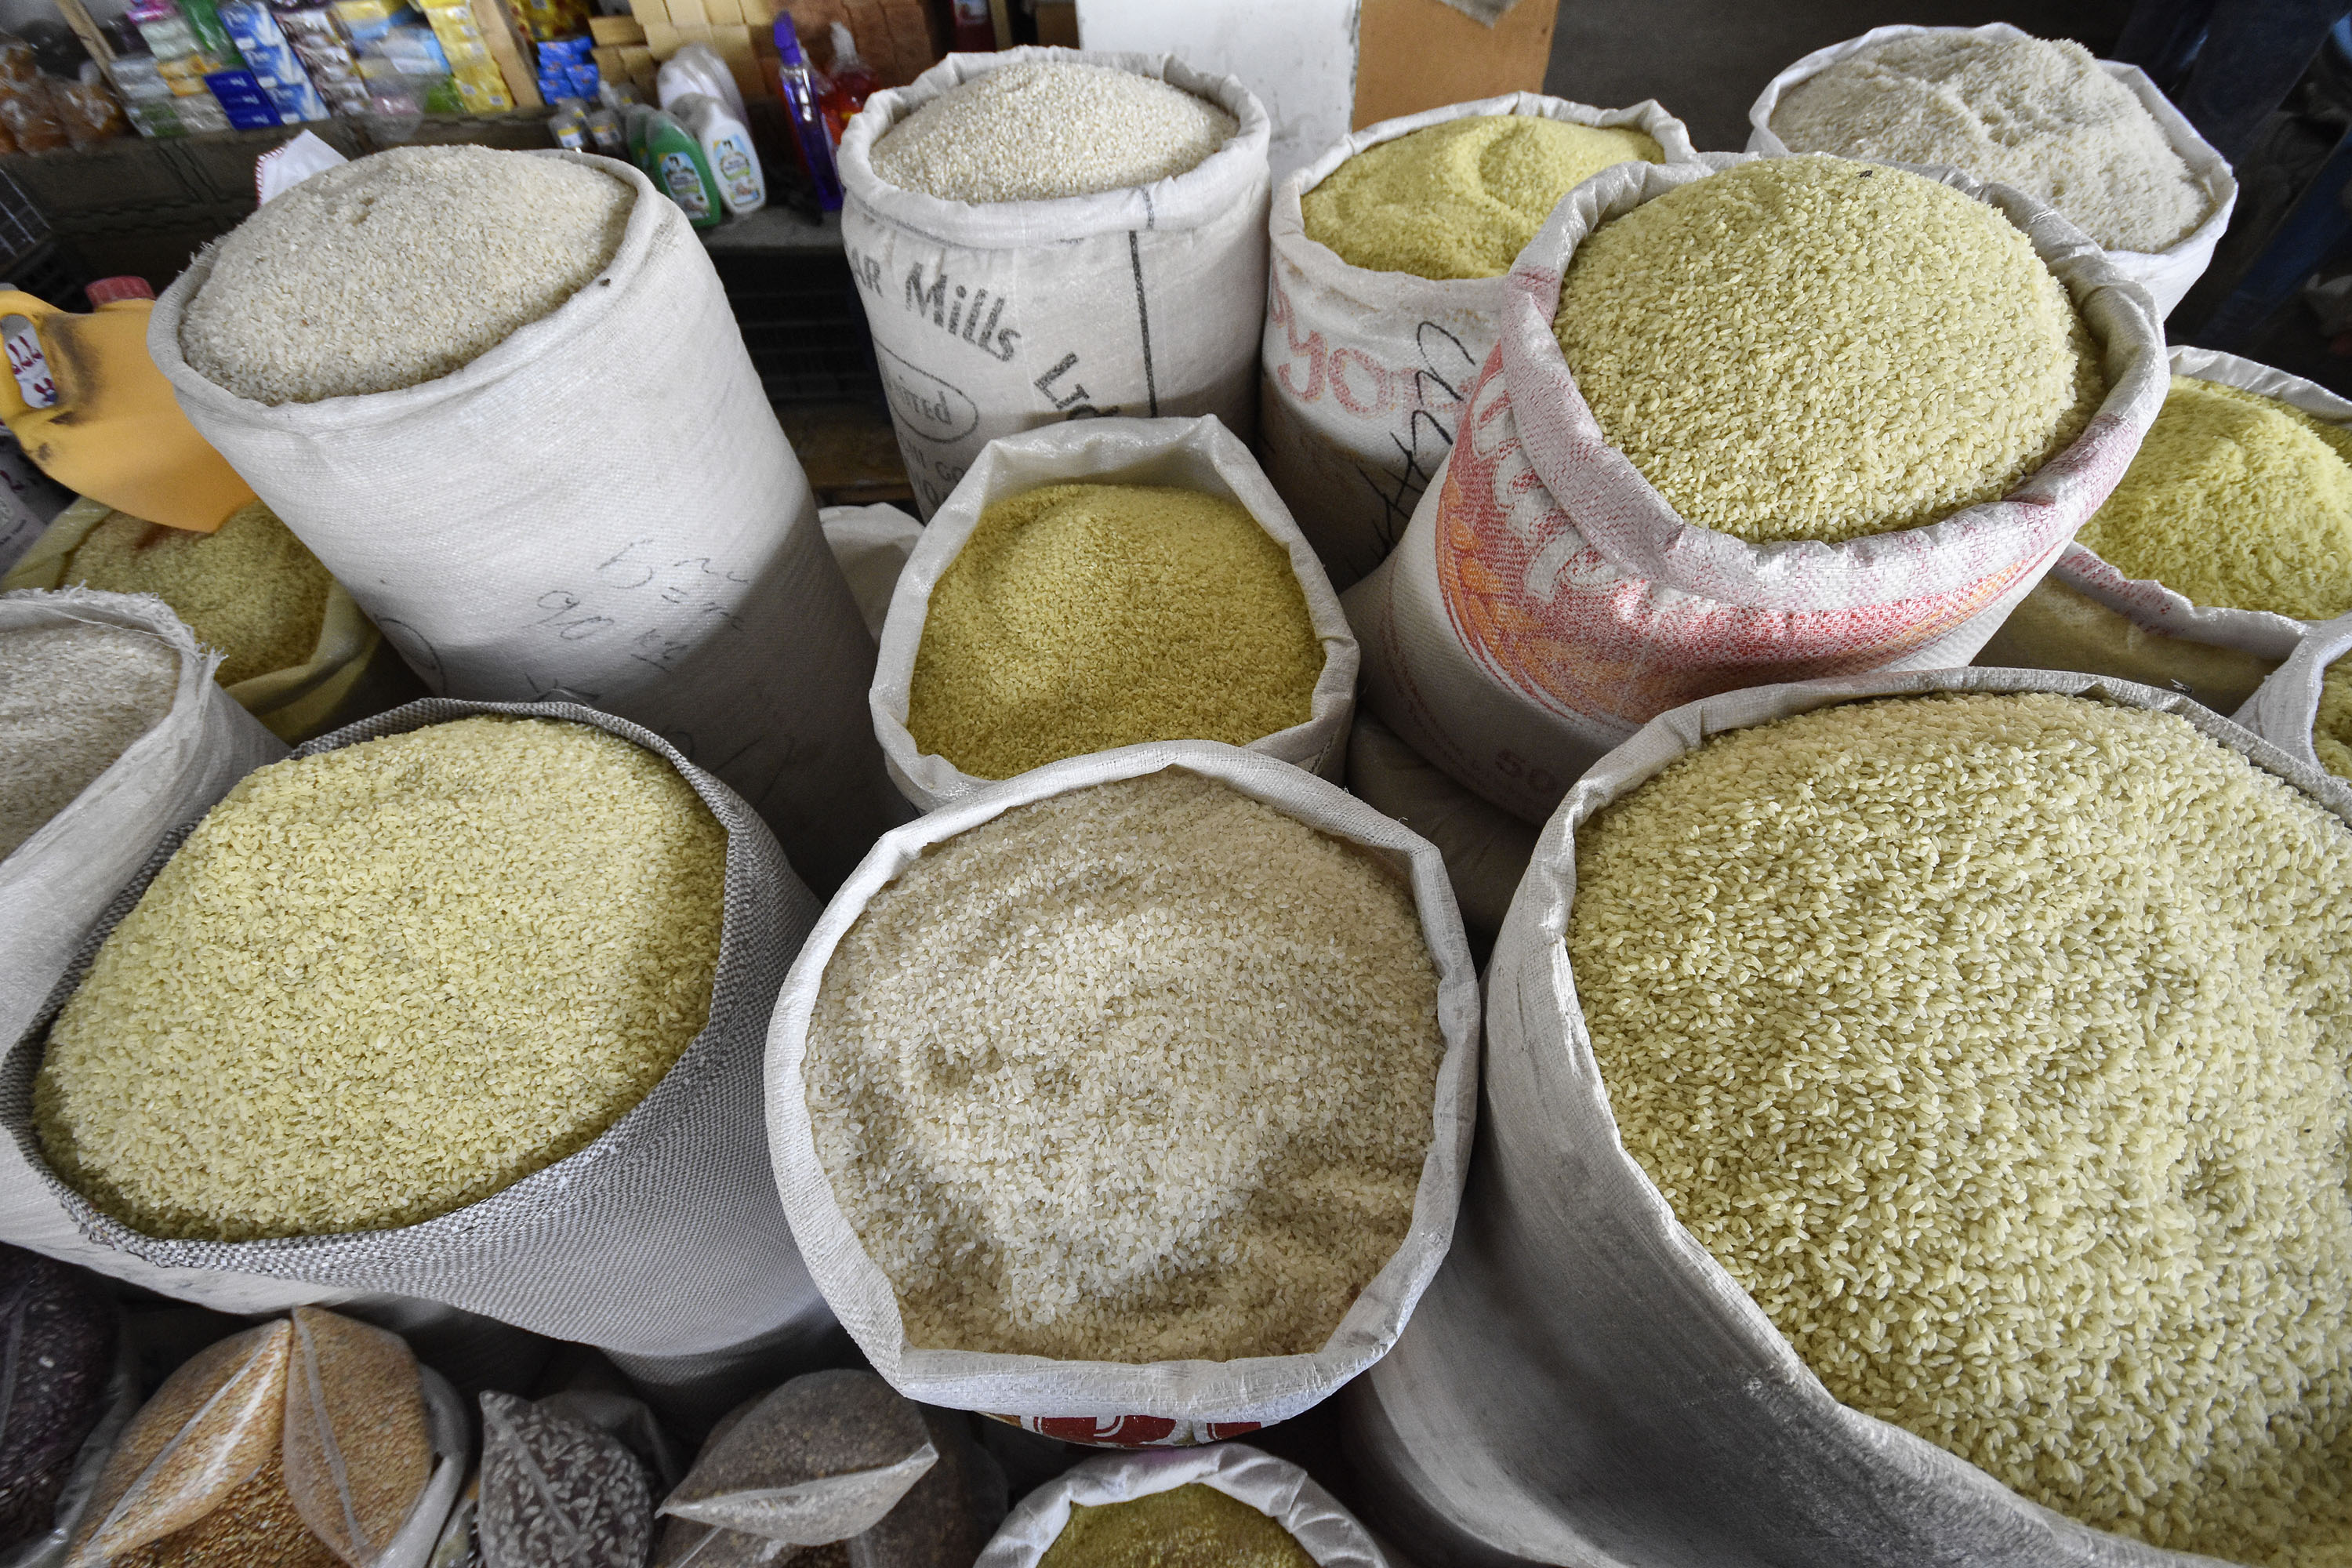 16 August 2016, Hissar, Tajikistan - Rice is displayed for a sale at an indoor market.FAO project GCP/TAJ/013/EC: Strengthening Institutions and Capacity of the Ministry of Agriculture and State Veterinary Inspection Service for Policy Formulation. Objectives: Enhance the capacities of the Government to implement the Agrarian Reform and support the development of the agriculture and rural sector with specific focus on the formulation and implementation of inclusive and effective agriculture and food security policy processes. Improve platforms and institutions supportive to private public parnership in sector of provision of veterinary services.